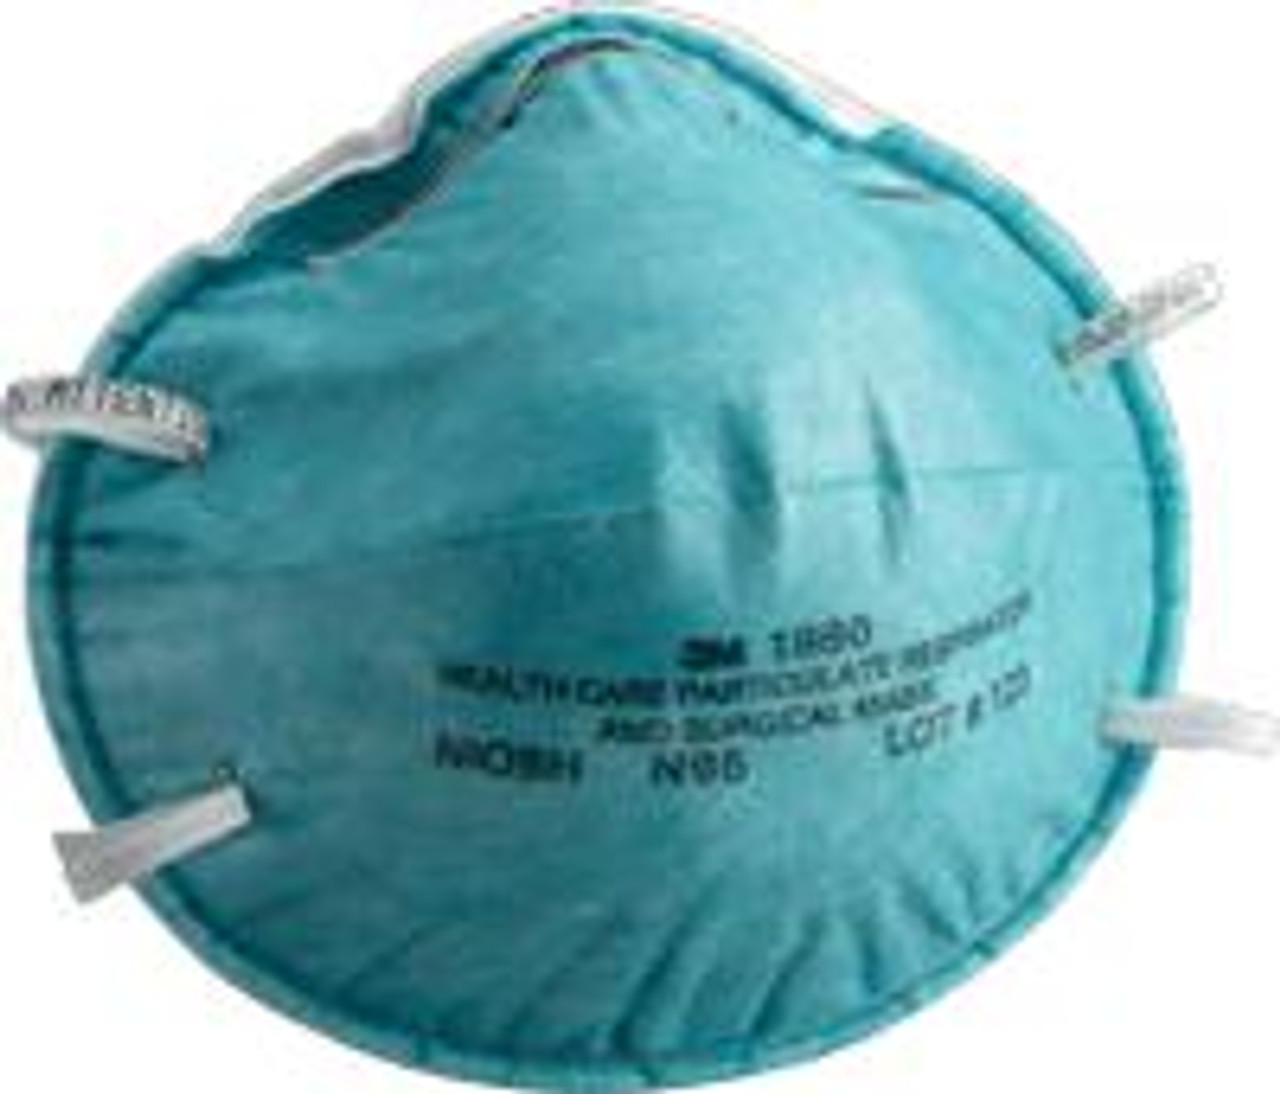 Mask Molded Care Surgical Health Regular Cone Teal And Bx Respirator 3m N95 1860 Bx 20 Particulate